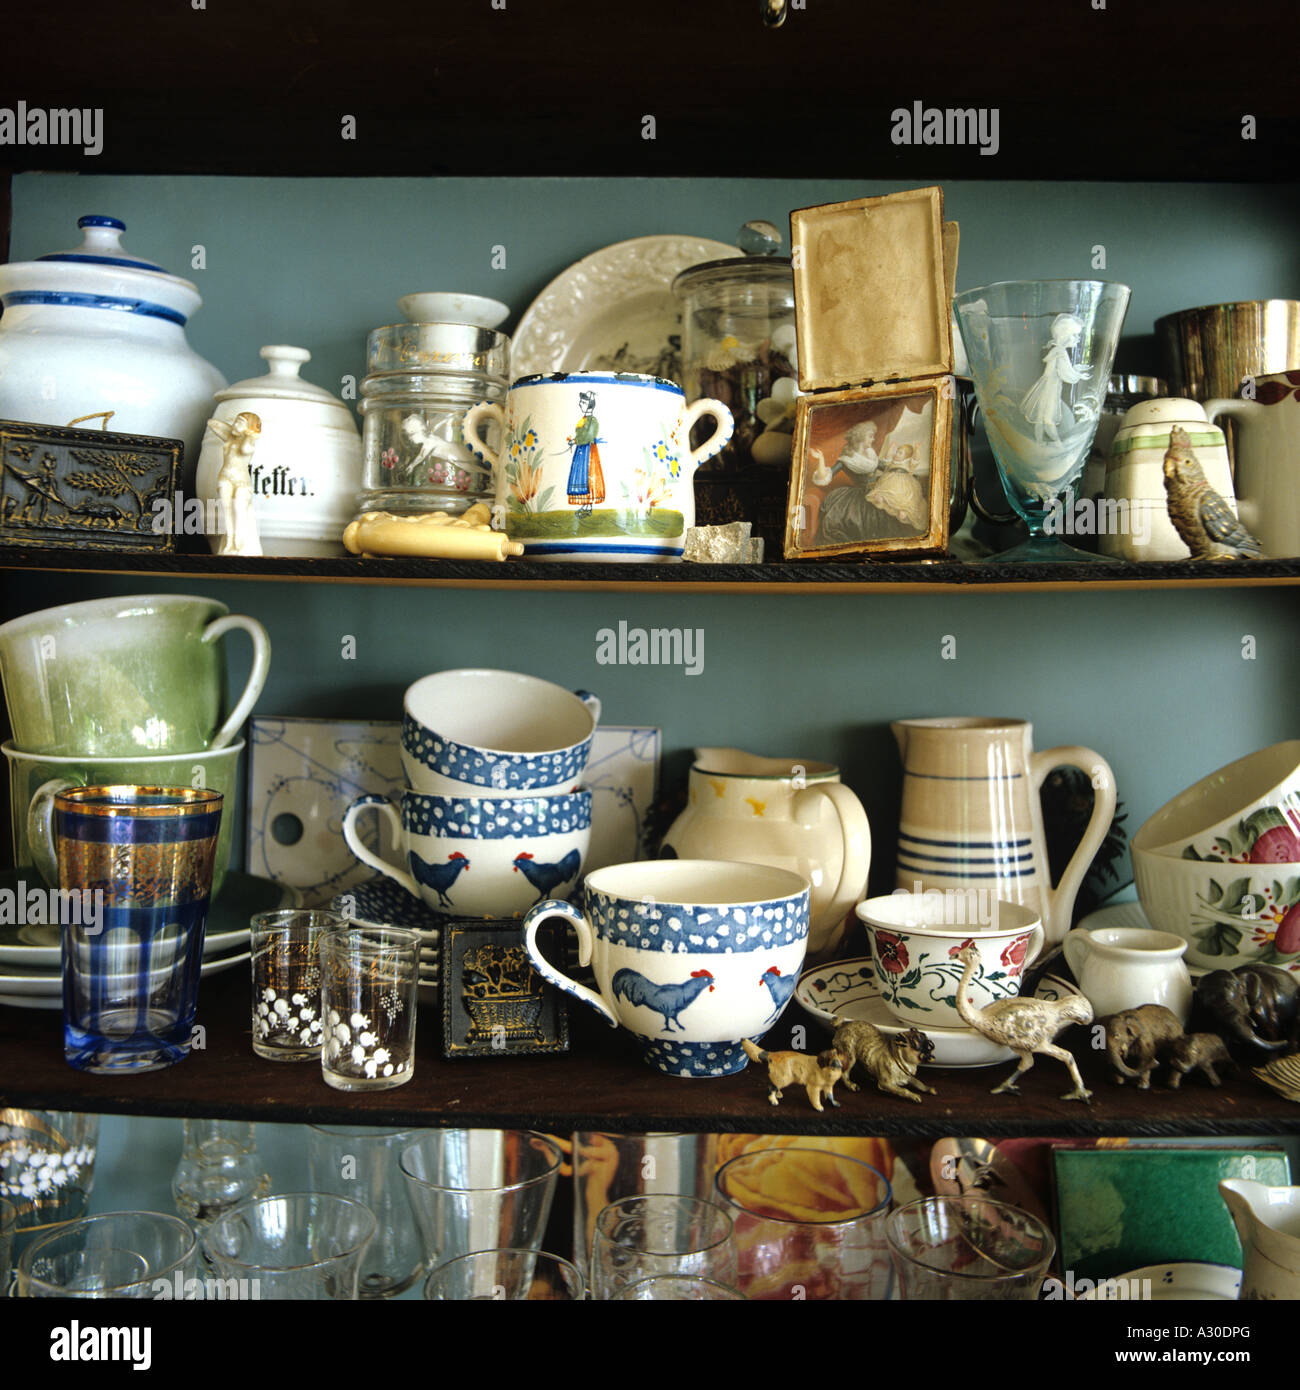 Assortment of crockery and cups on shelf in country kitchen - Stock Image